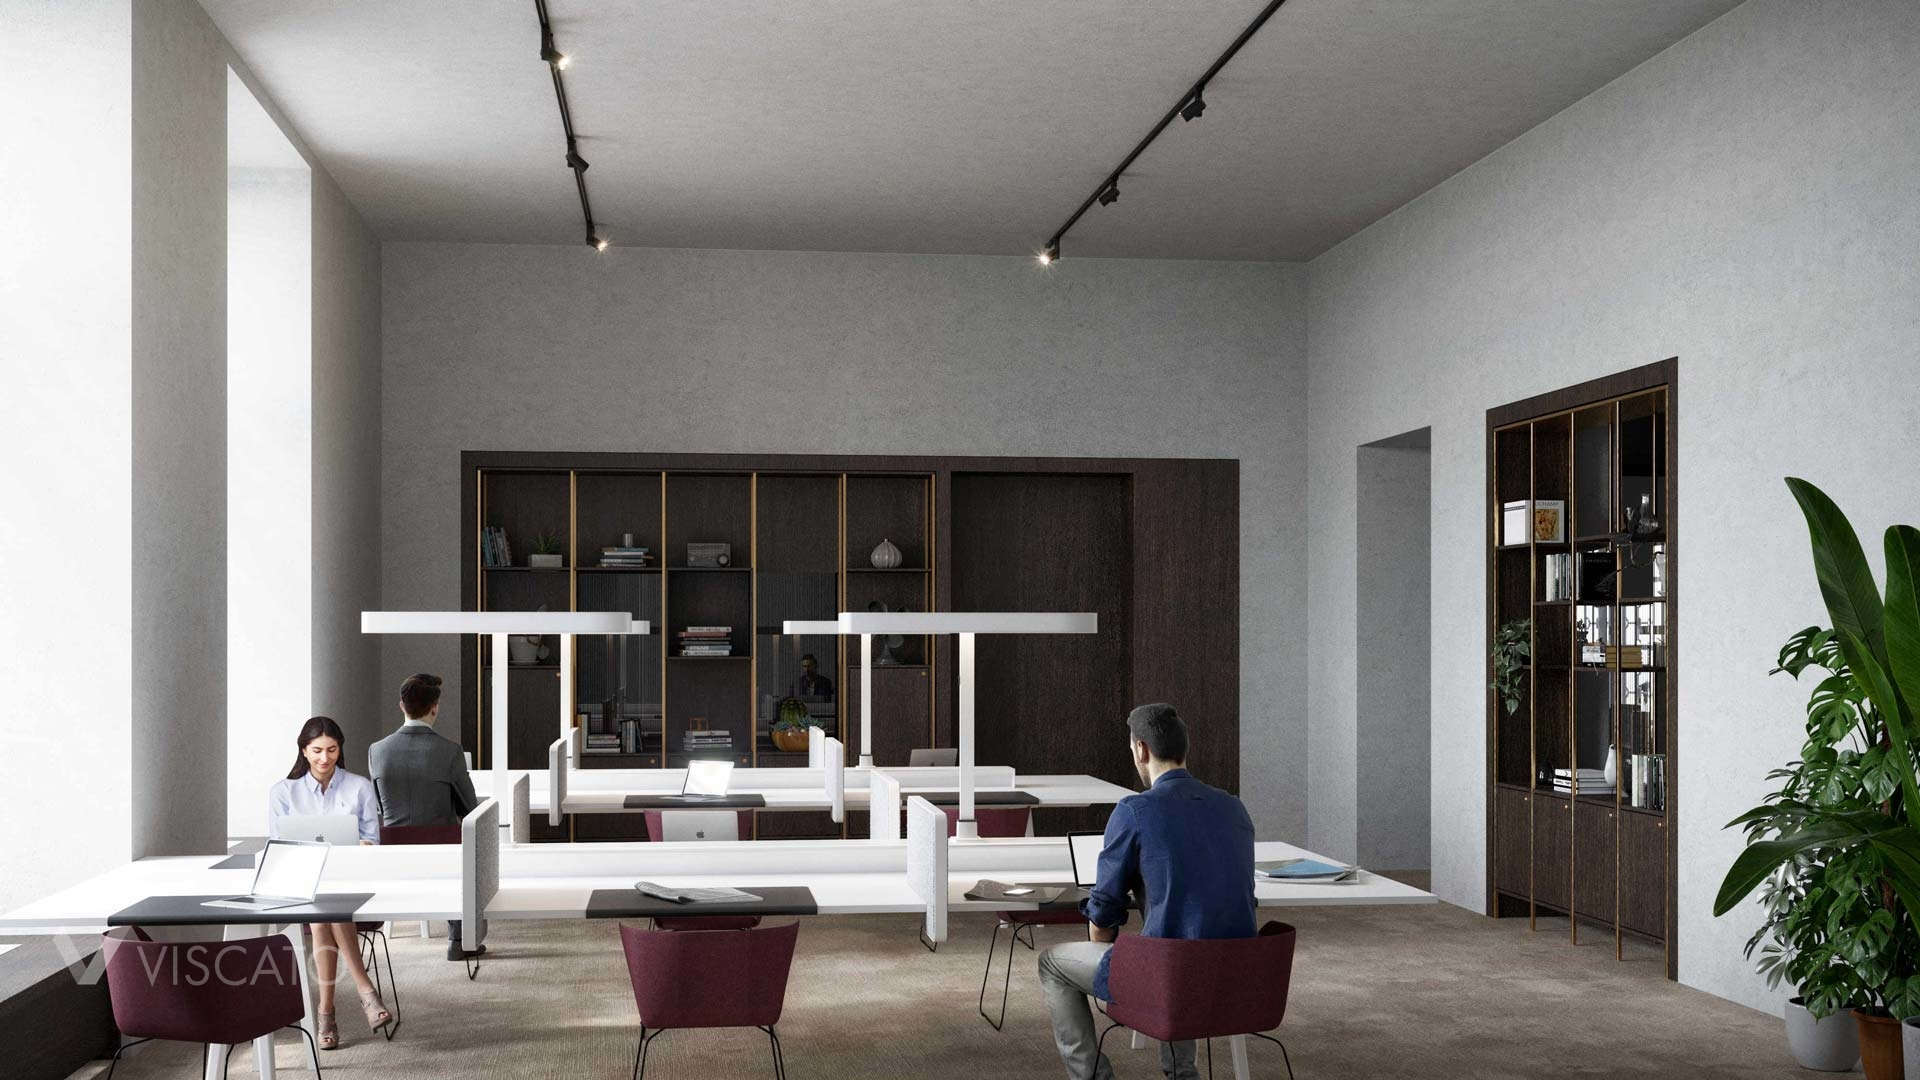 open space area of the office, 3d rendering